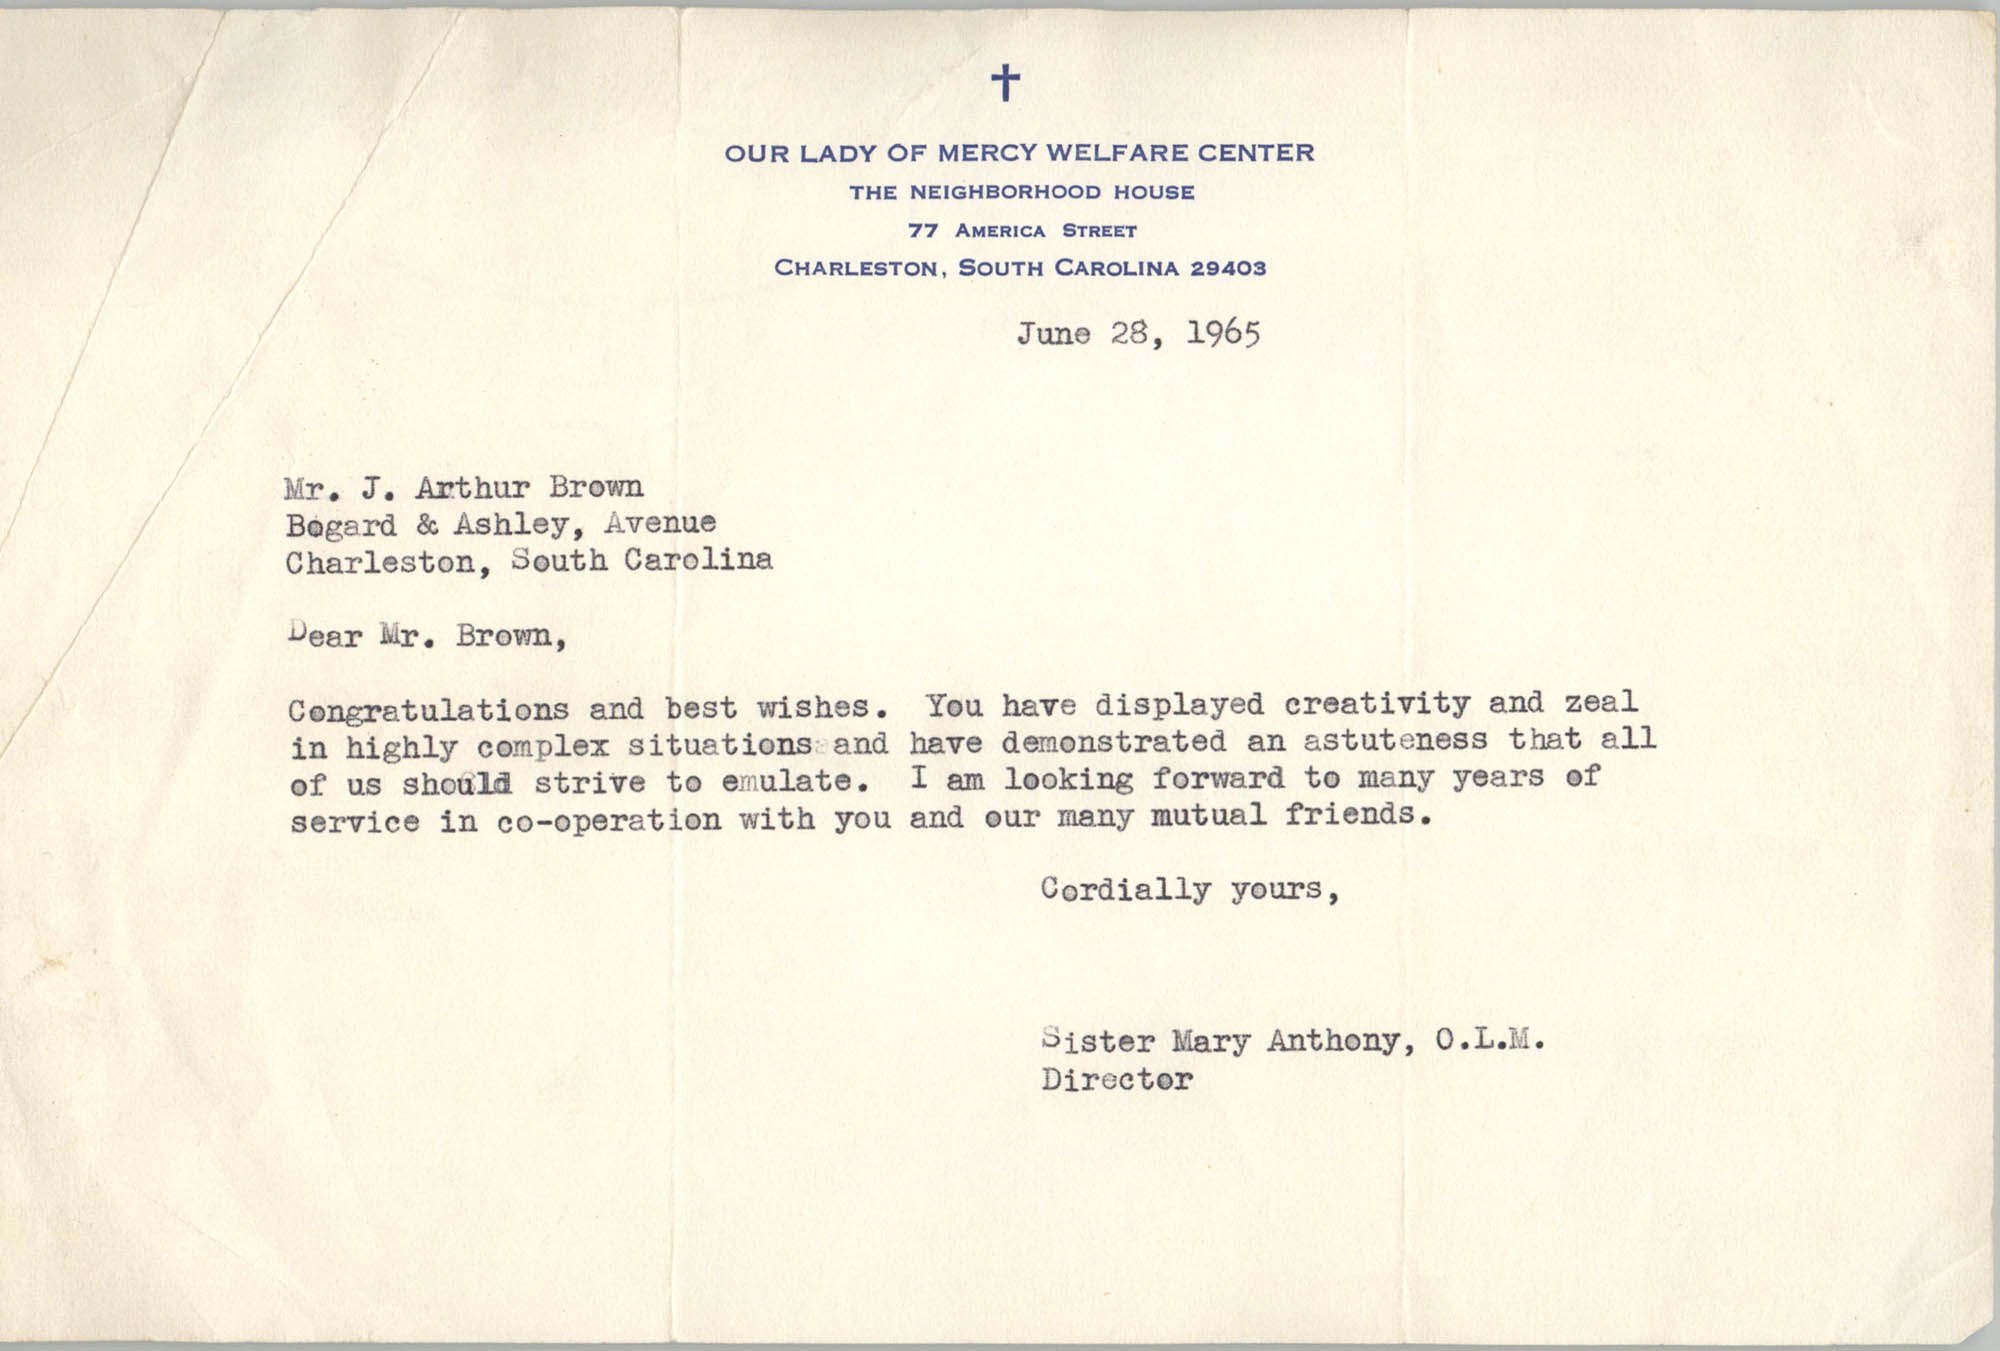 Letter from Sister Mary Anthony to J. Arthur Brown, June 28, 1965